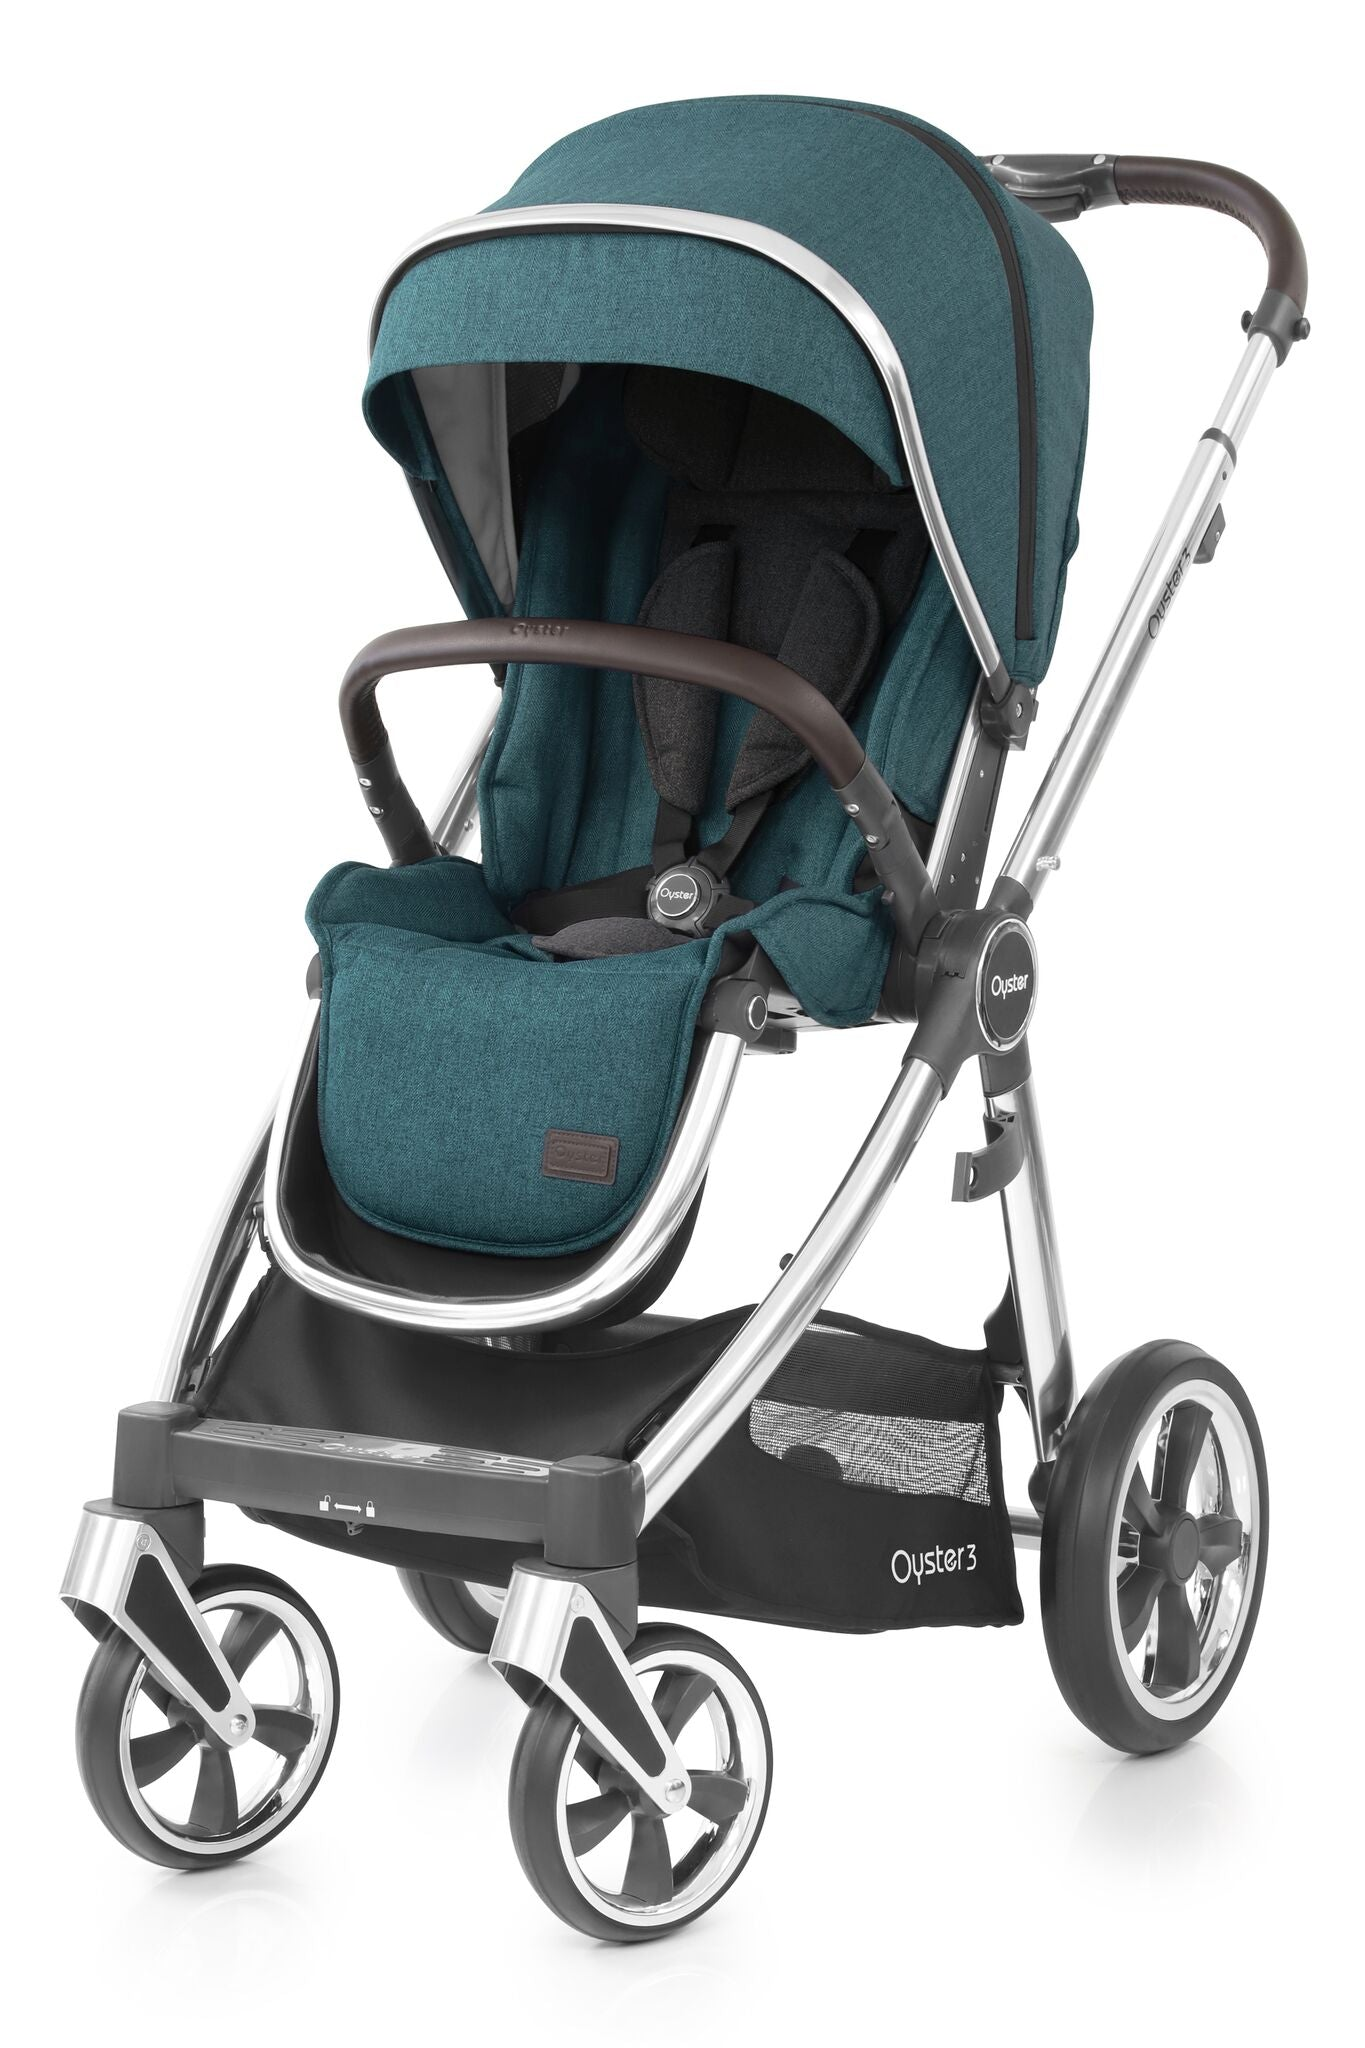 Babystyle Oyster 3 Stroller & Carrycot - Peacock